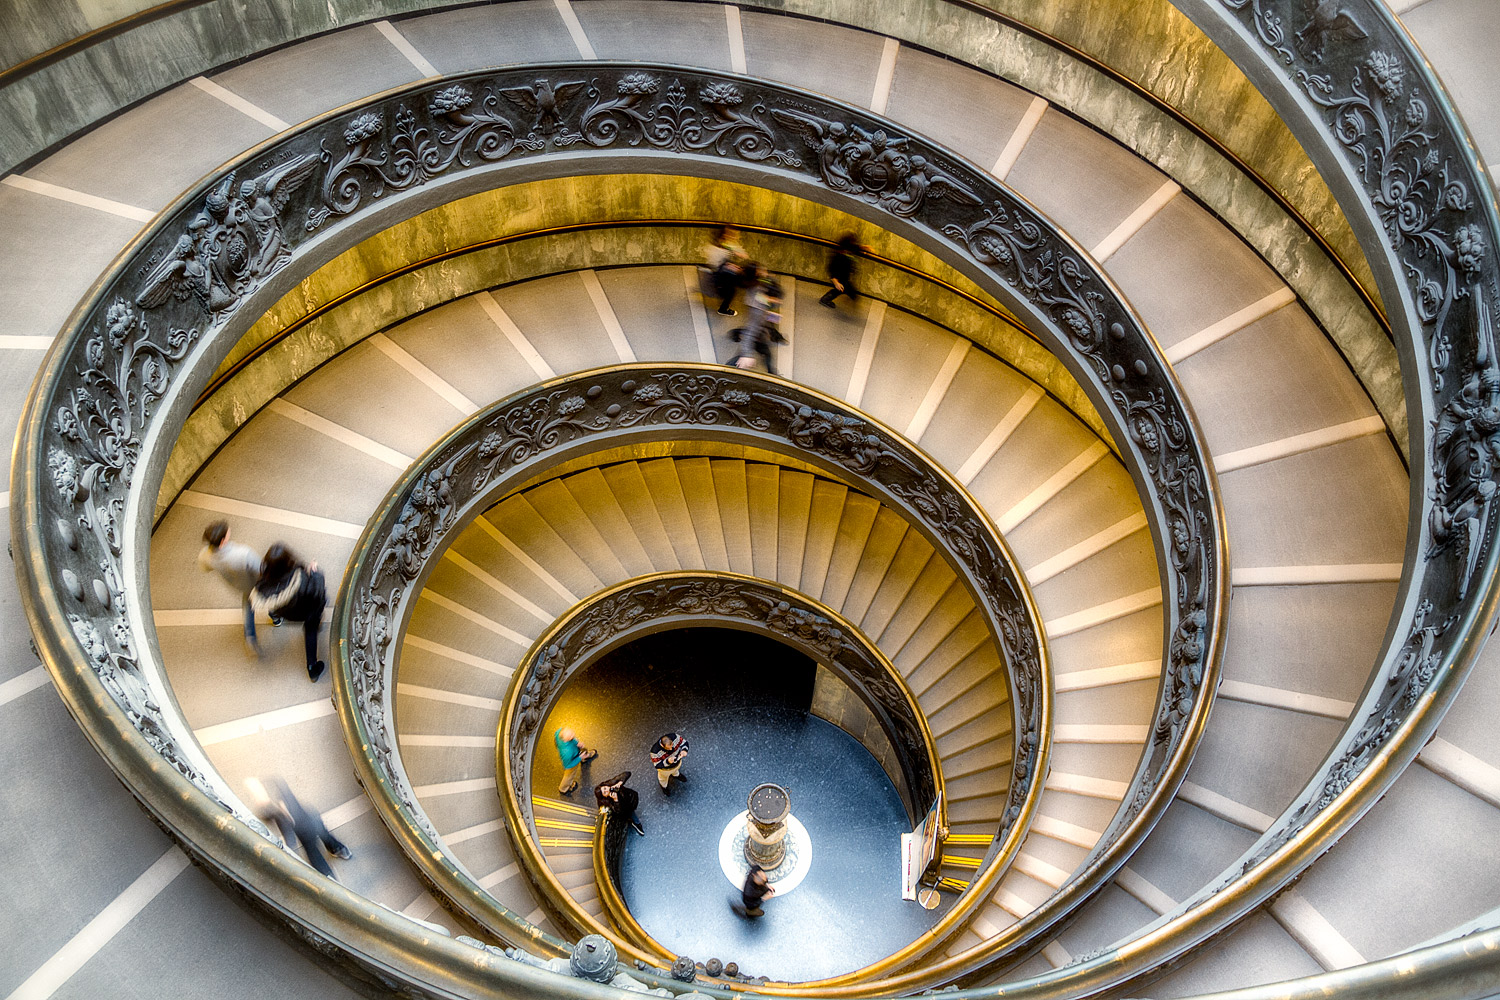 TheBramante Staircase - 17mm   1/10th sec   f2.8   ISO800